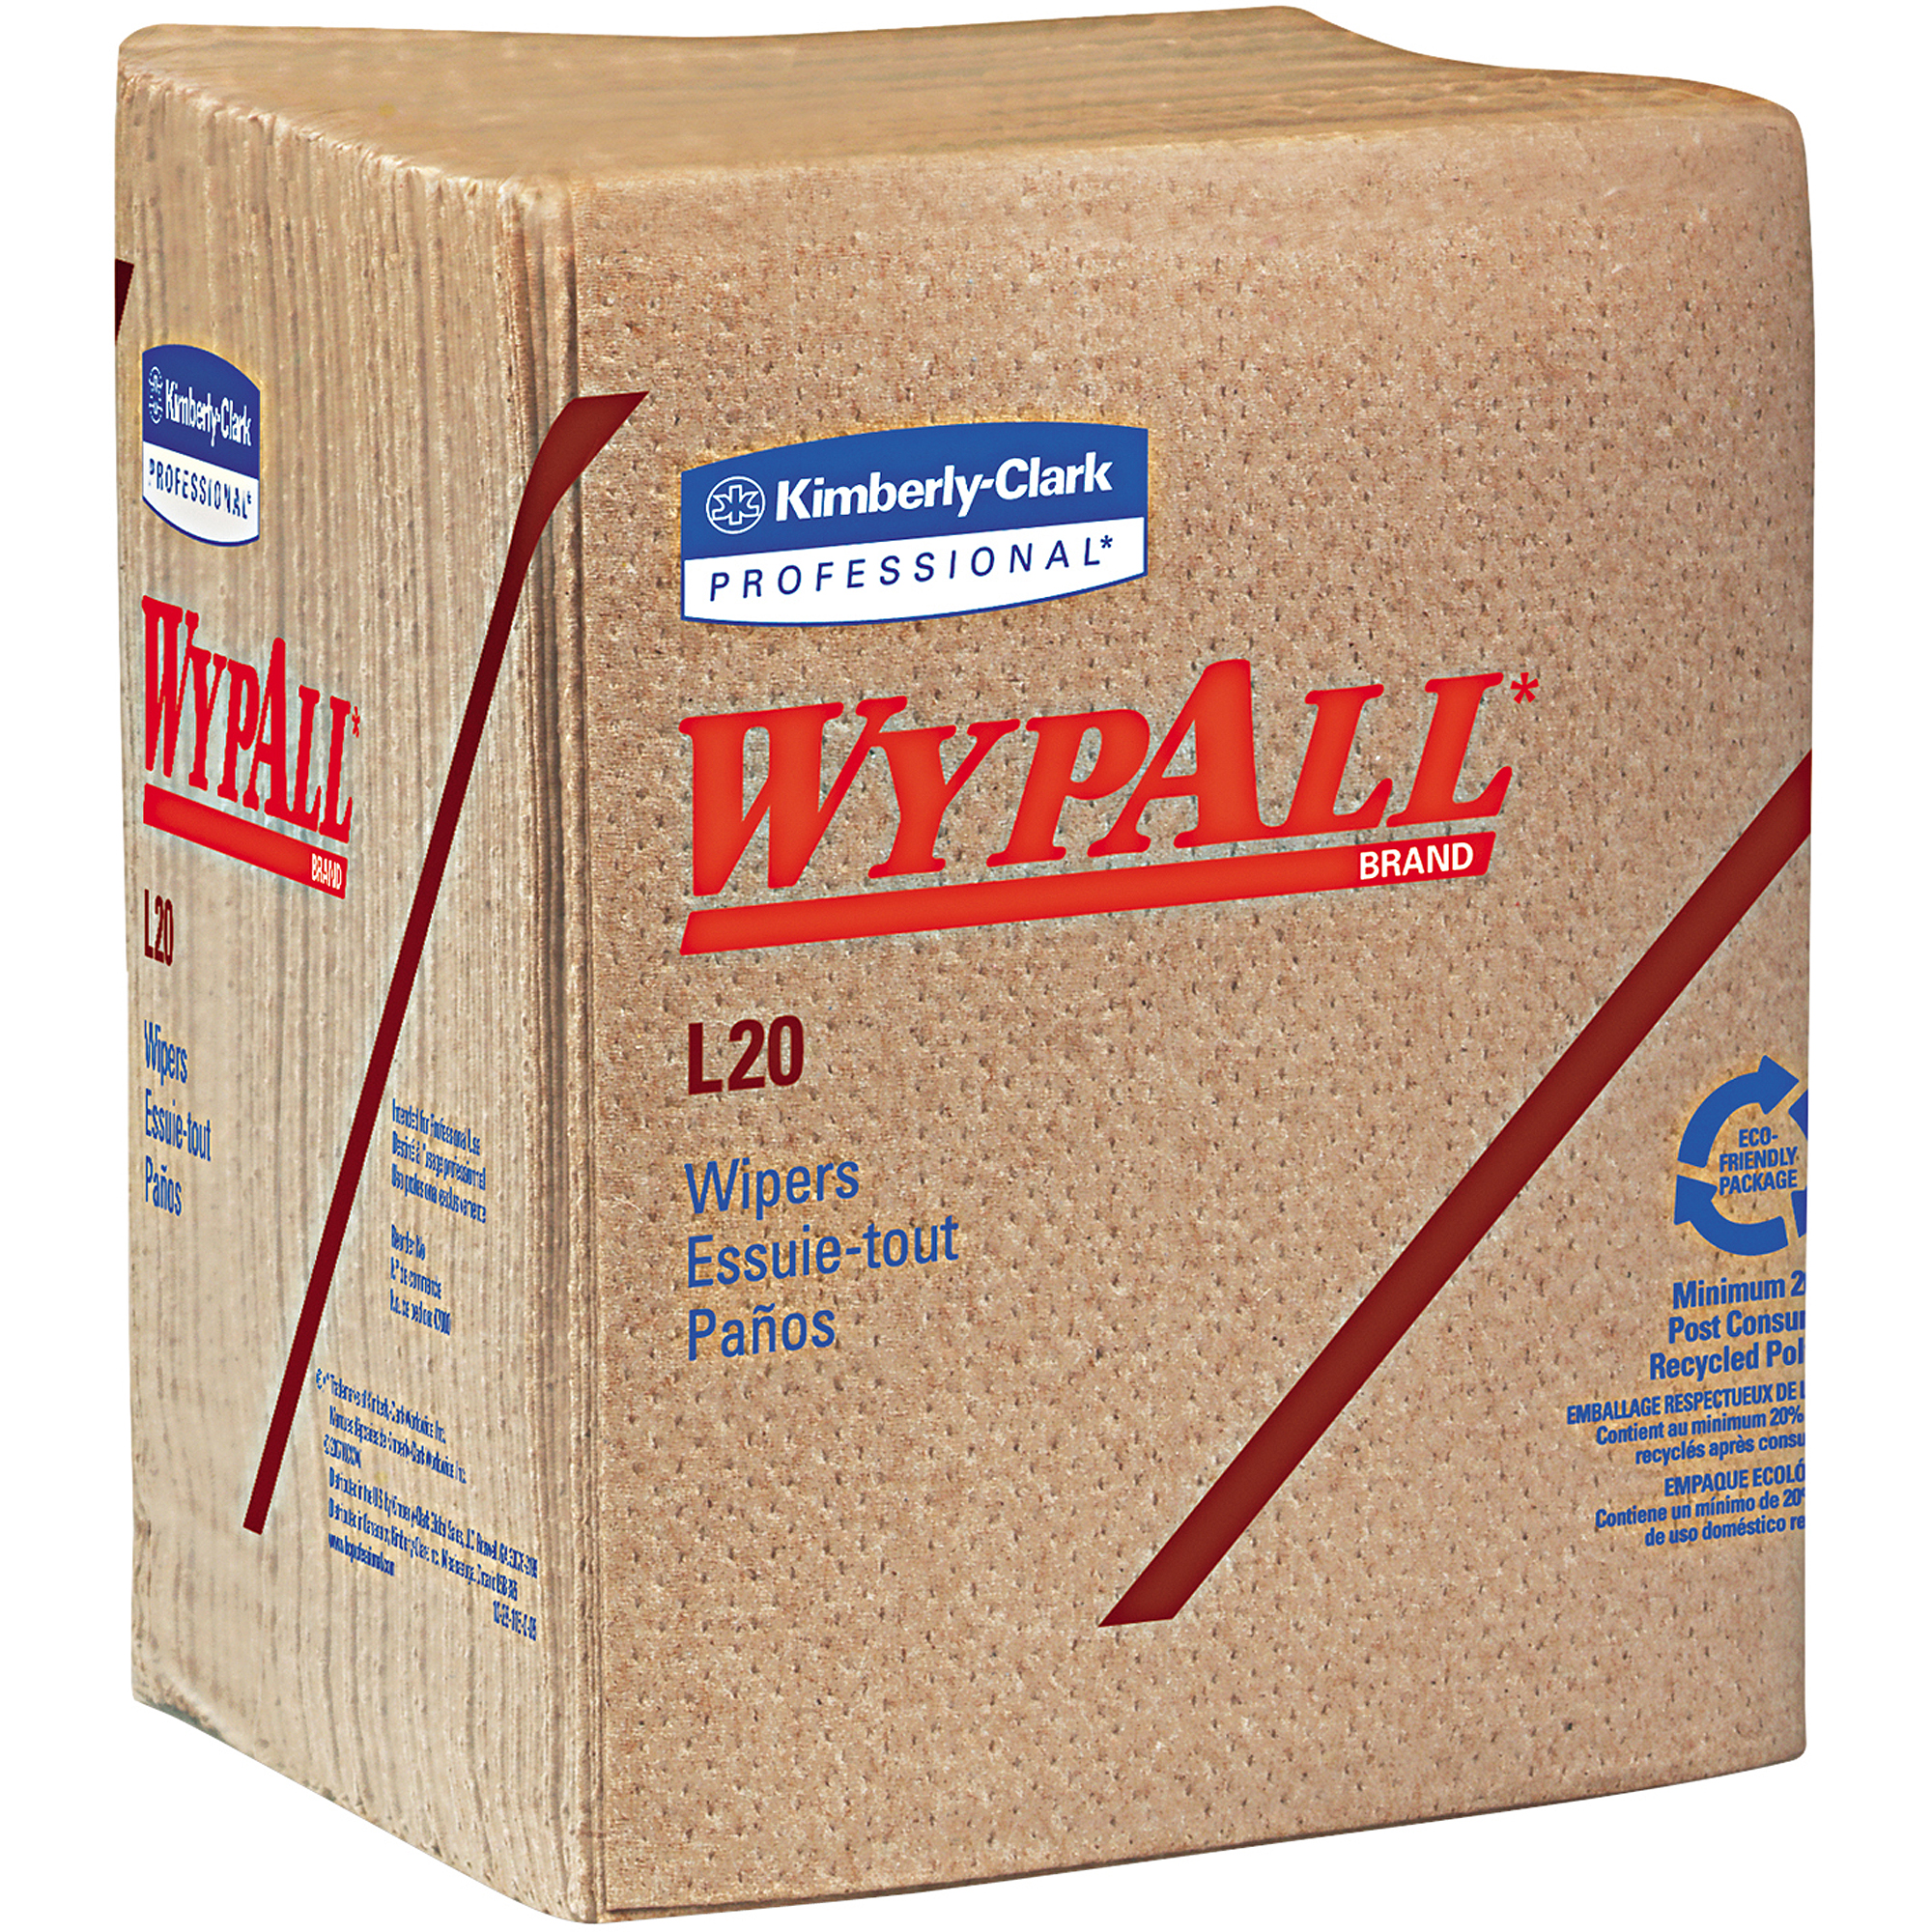 Kimberly-Clark Professional Wypall L20 Wipers, 68 sheets, (Pack of 12)